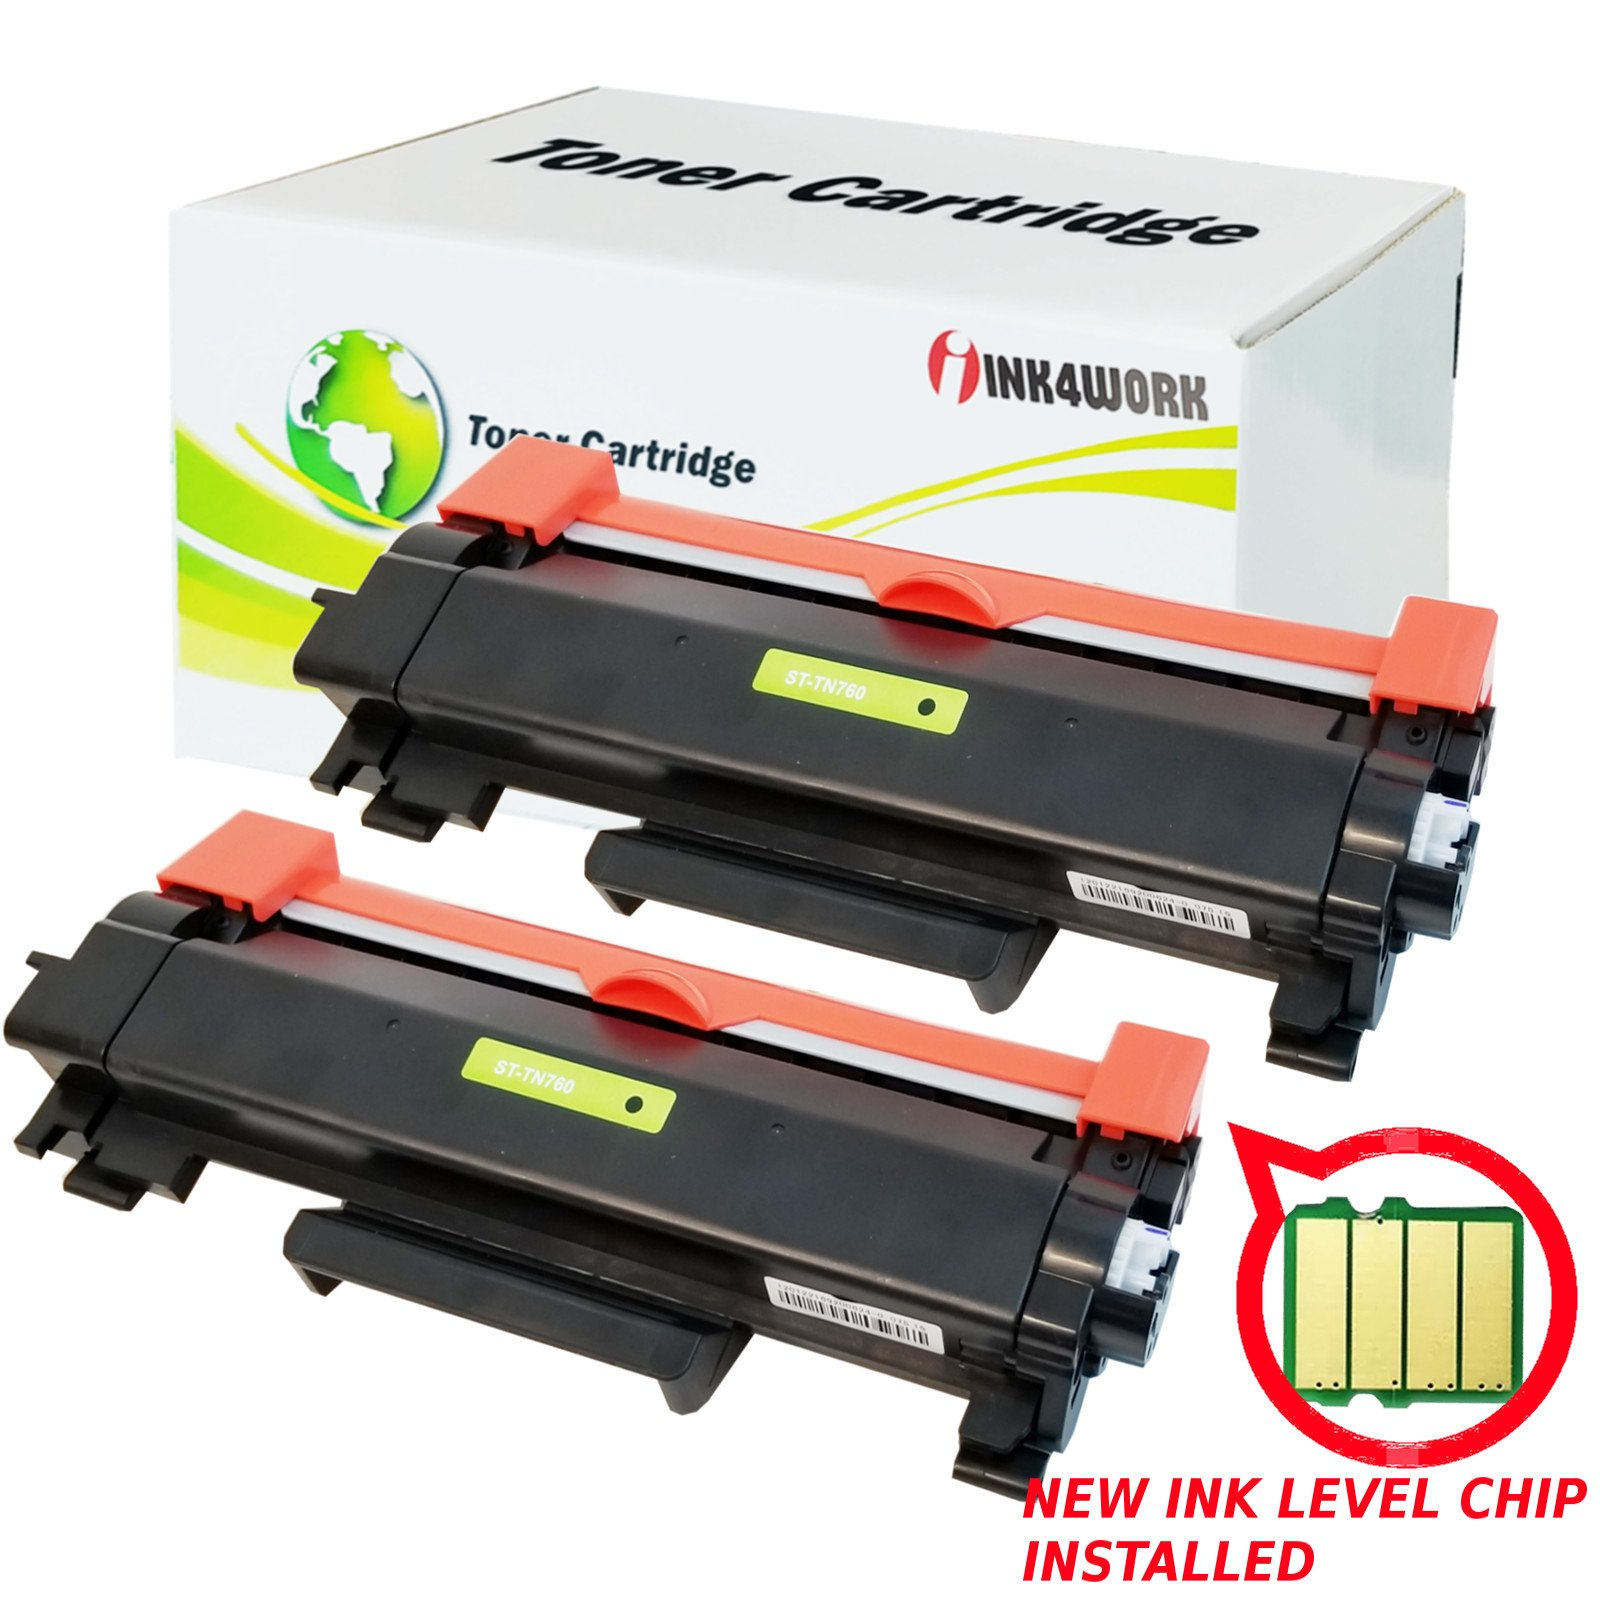 2 Pack INK4WORK (WITH CHIP) High Yield Compatible for Brother TN-760 TN730 TN760 HLL2395DW Toner Cartridge for Brother HL-L2350dw HL-L2370dw MFC-L2710dw DCP-L2550dw MFC-L2750dw HL2390DW printers